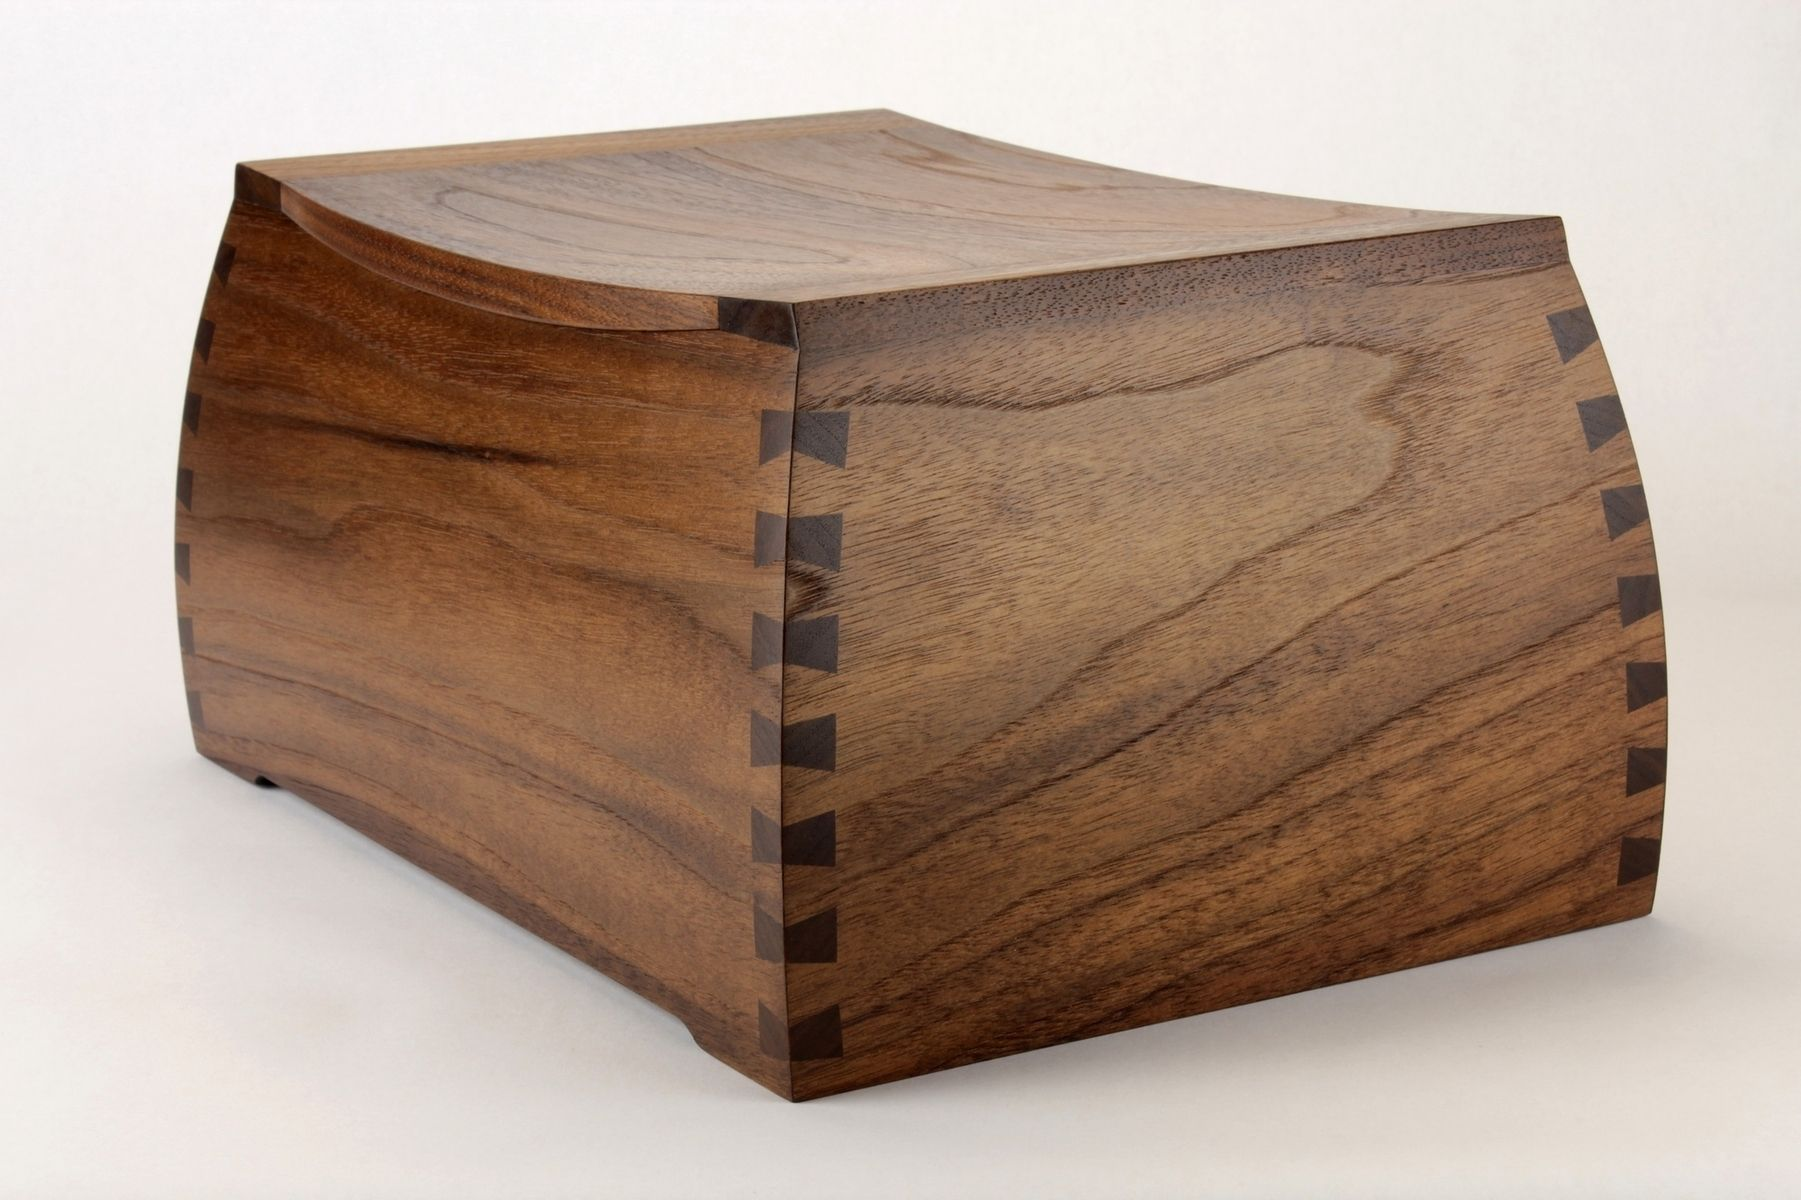 Hand Made Black Walnut Curved Dovetail Urns By Brian